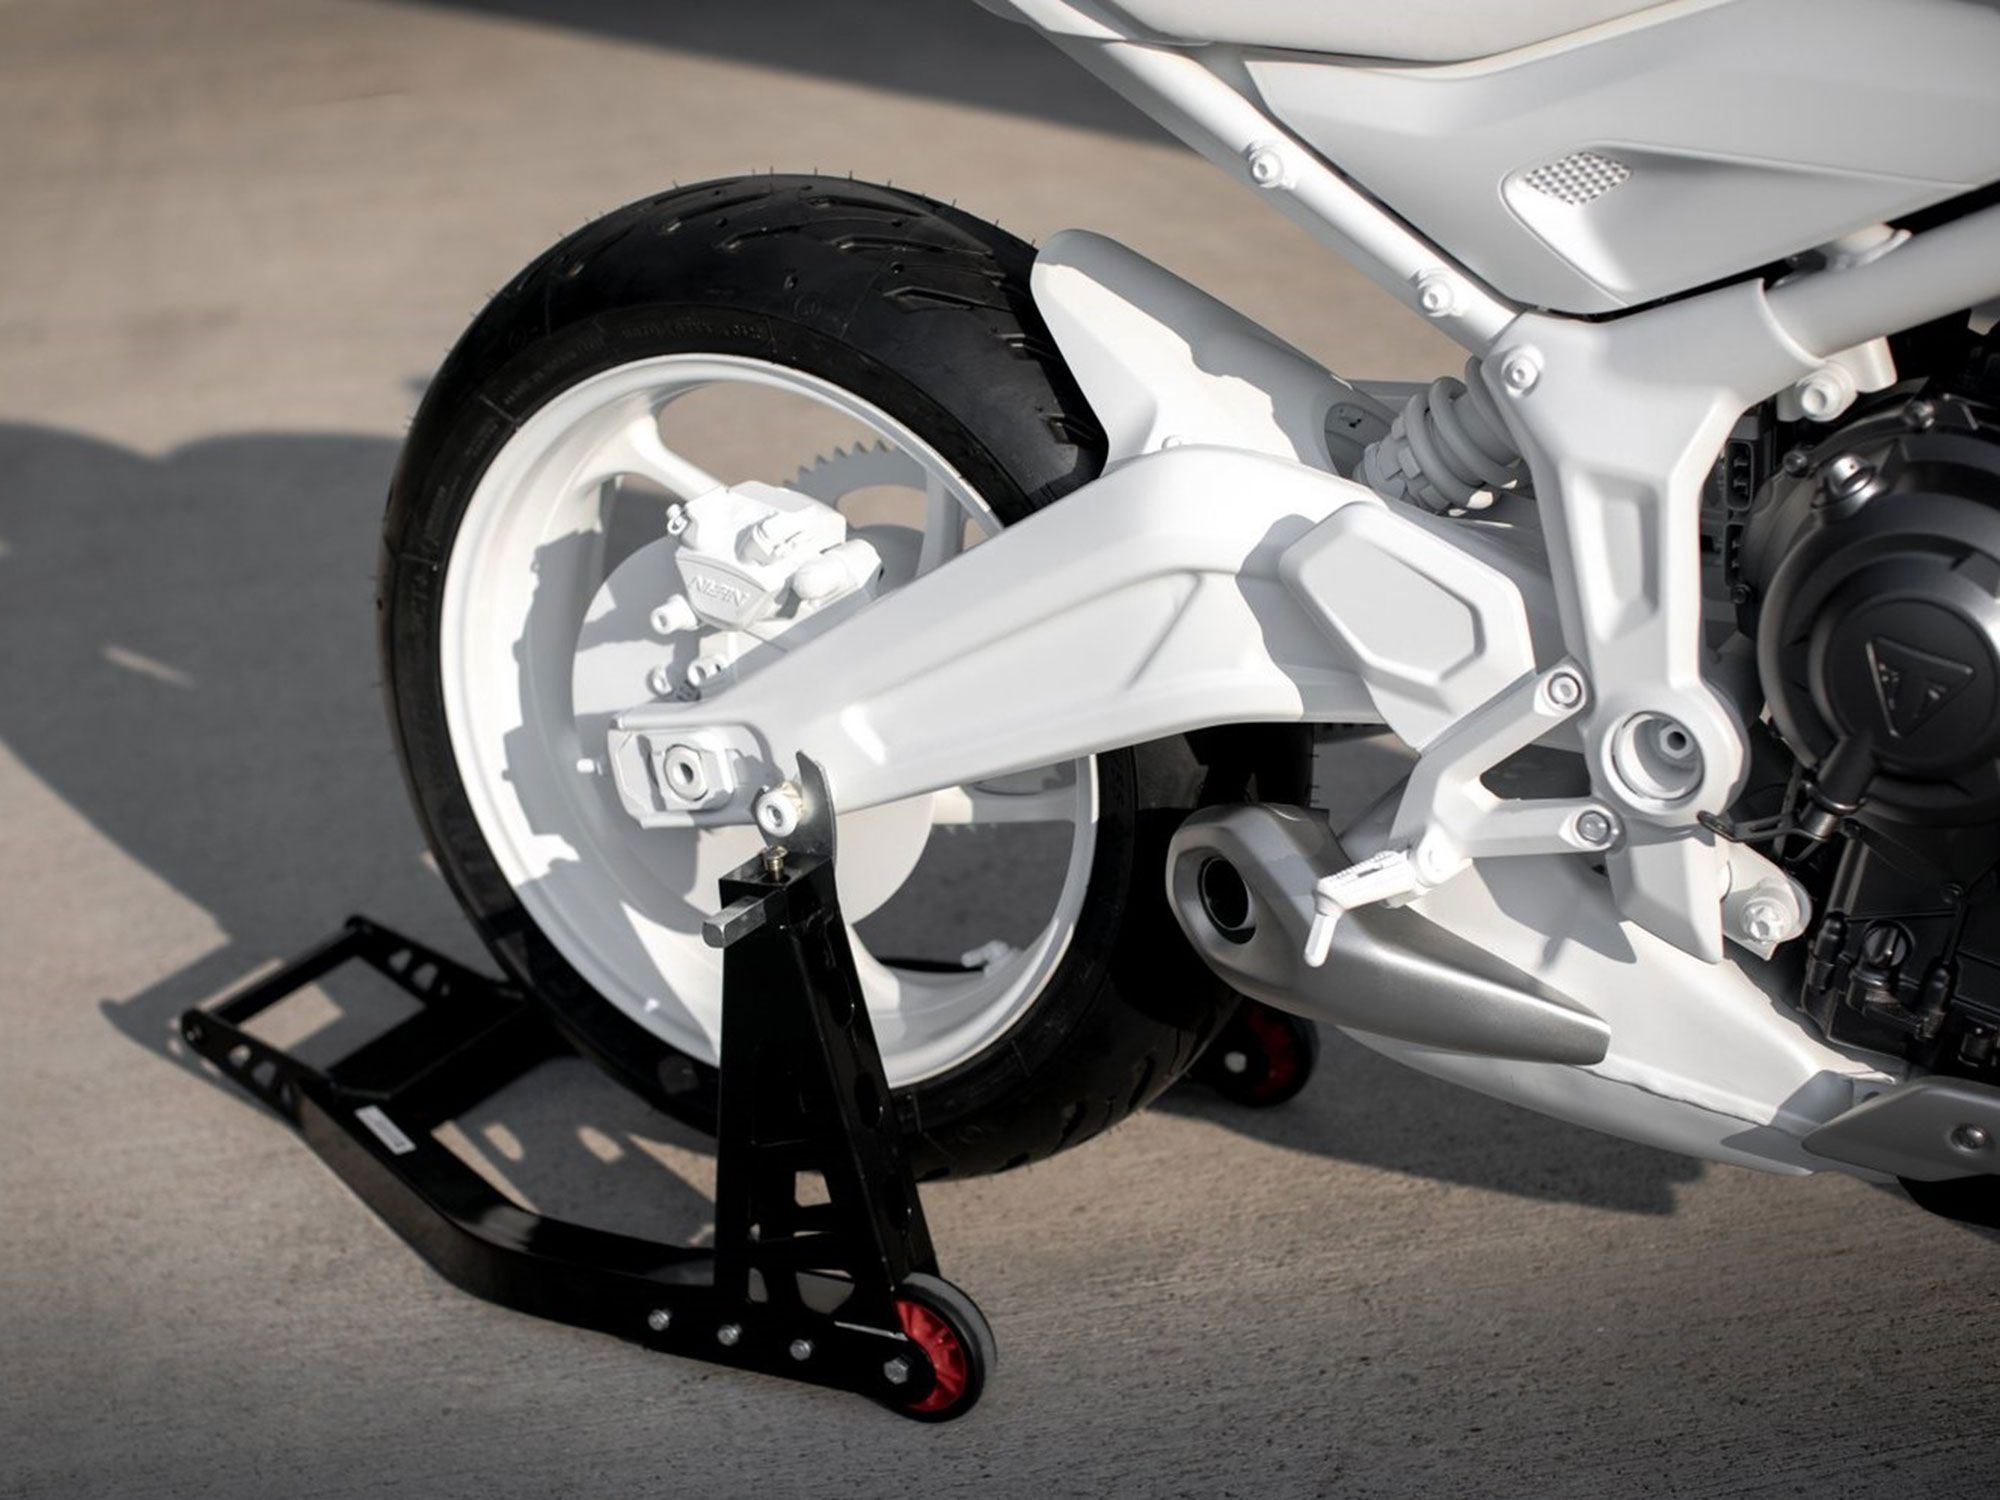 Triumph aims to keep price low by using an all-new steel tube frame that's easy to mass-produce. The swingarm here is aluminum however.